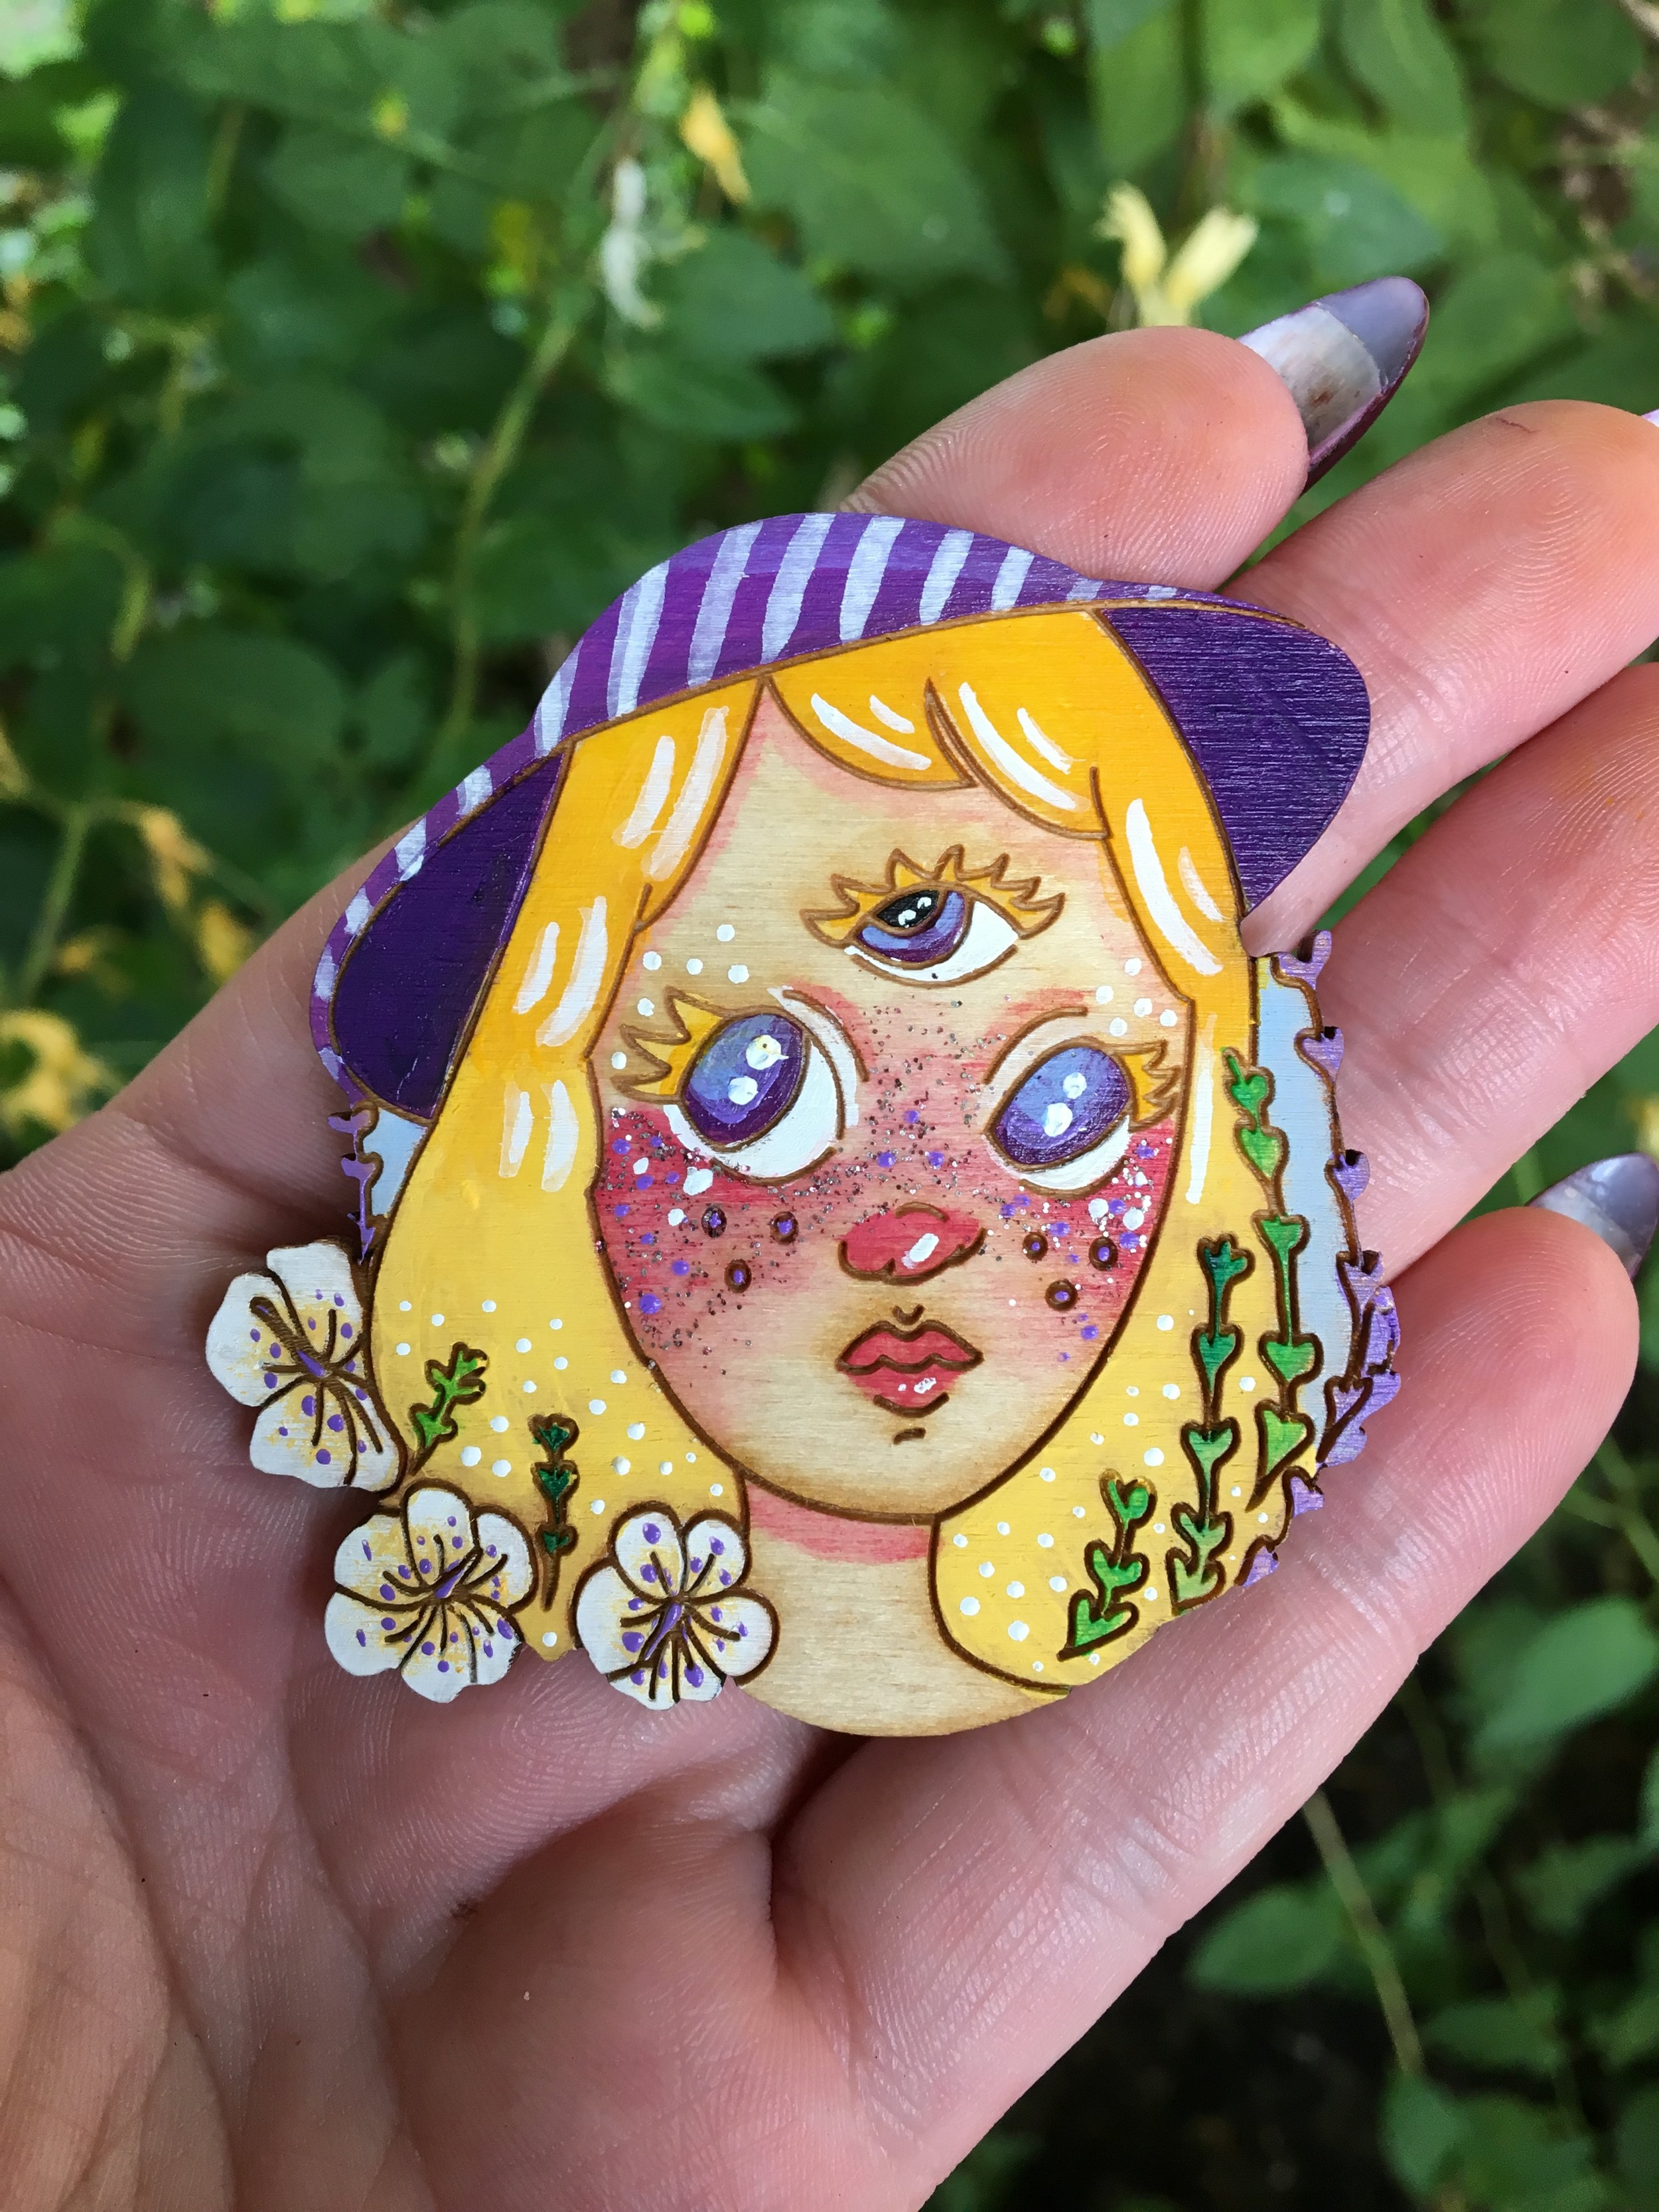 Image of a wooden brooch with a blonde, three-eyed person and flowers painted on the brooch